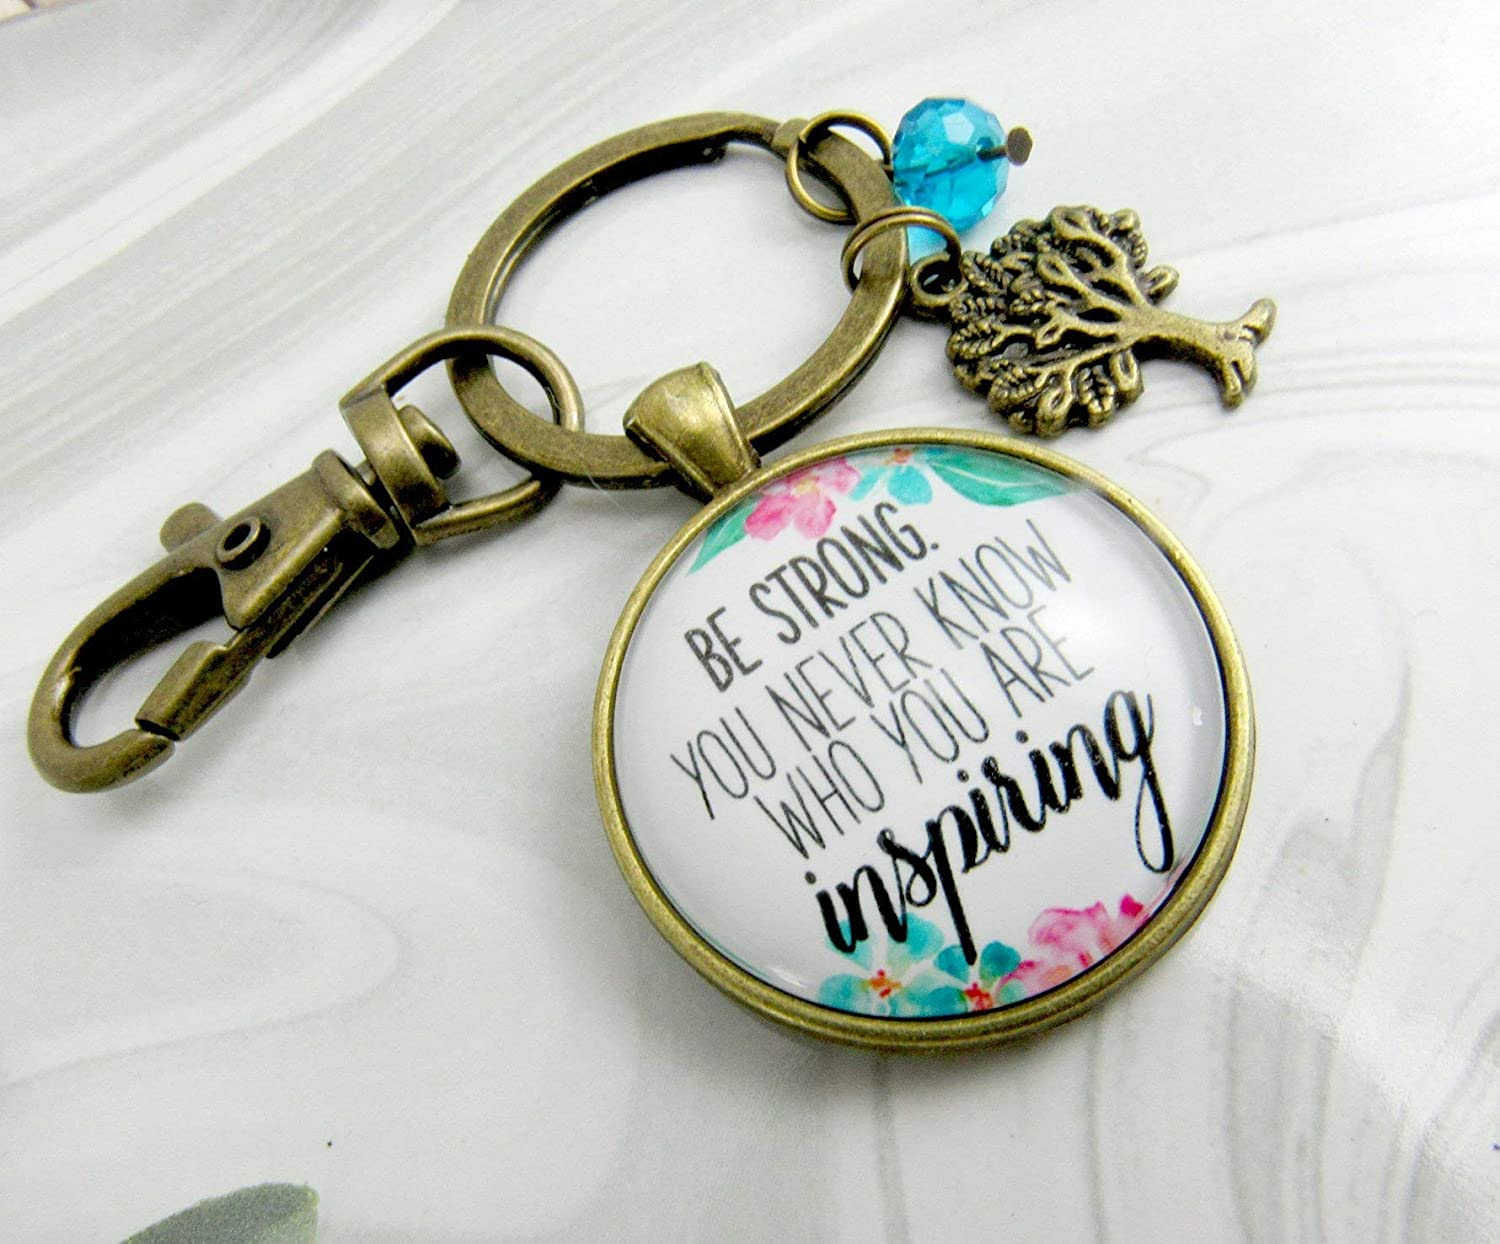 Inspirational Keychain Be Strong You Never Know Watercolor Vintage Pink Floral Meaningful Survivor Jewelry For Women